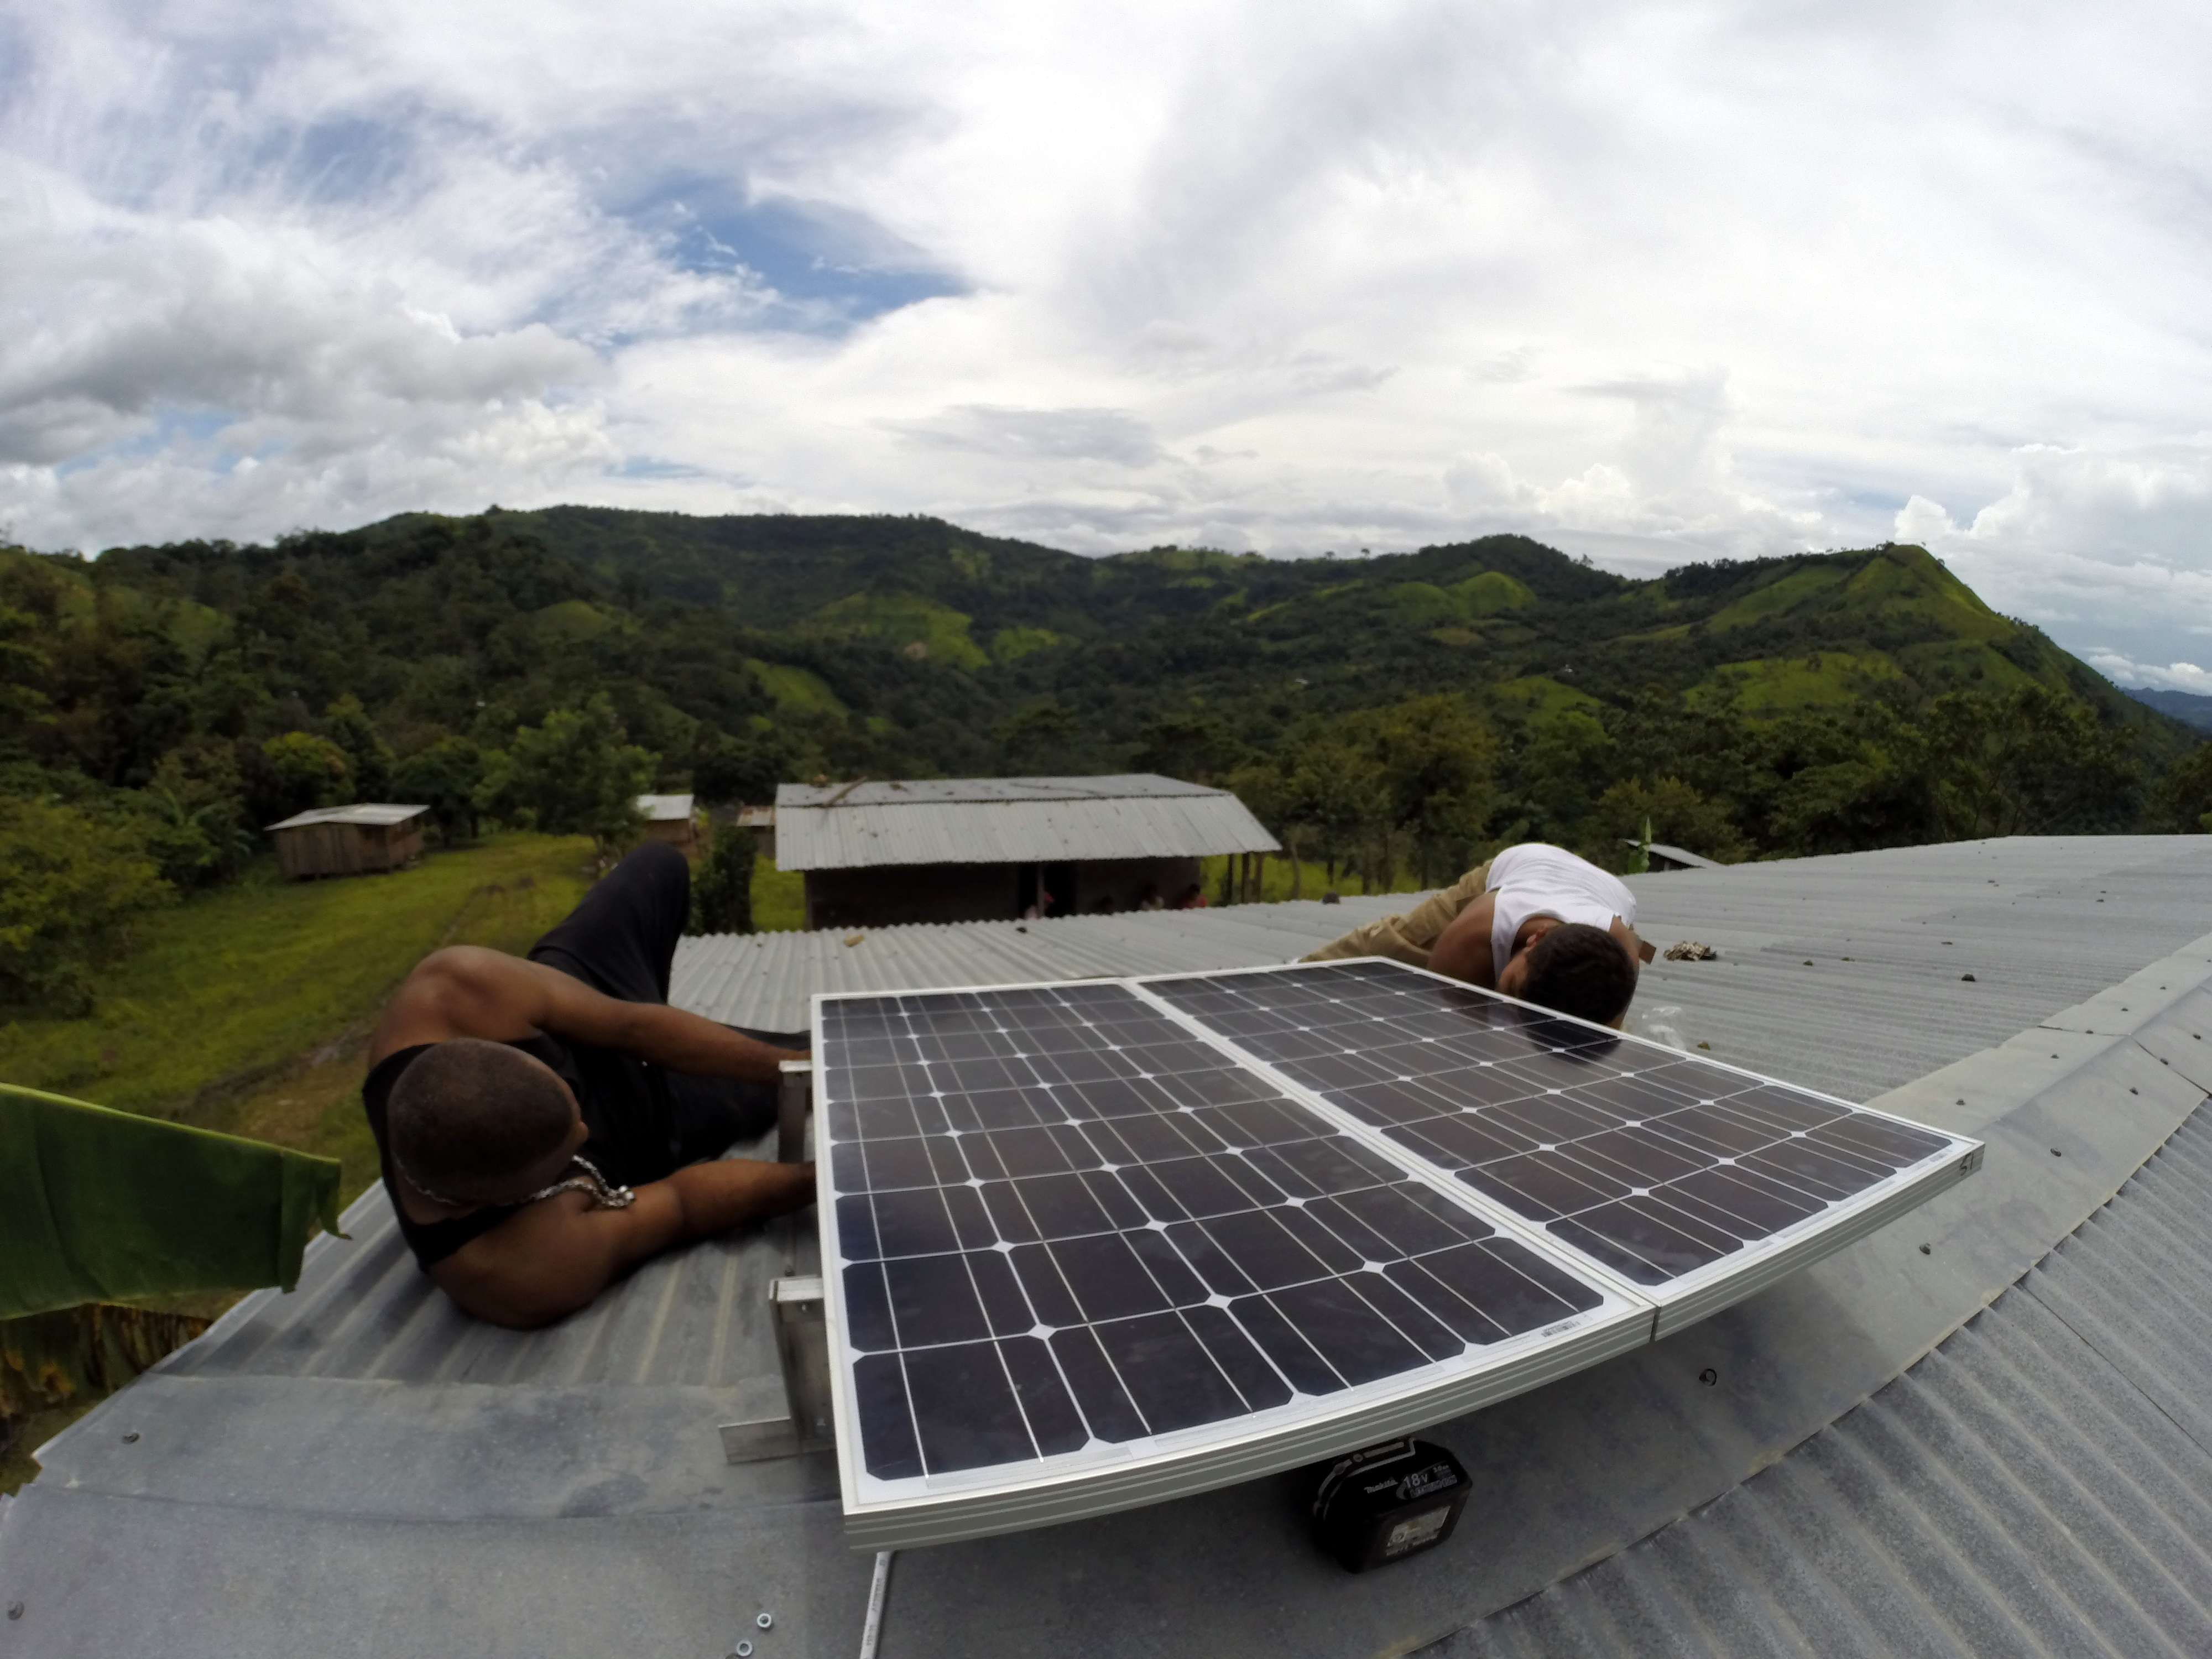 Two installers from local company Suni Solar work to set up this 250-watt PV system on a primary school in San Jose, Nicaragua.